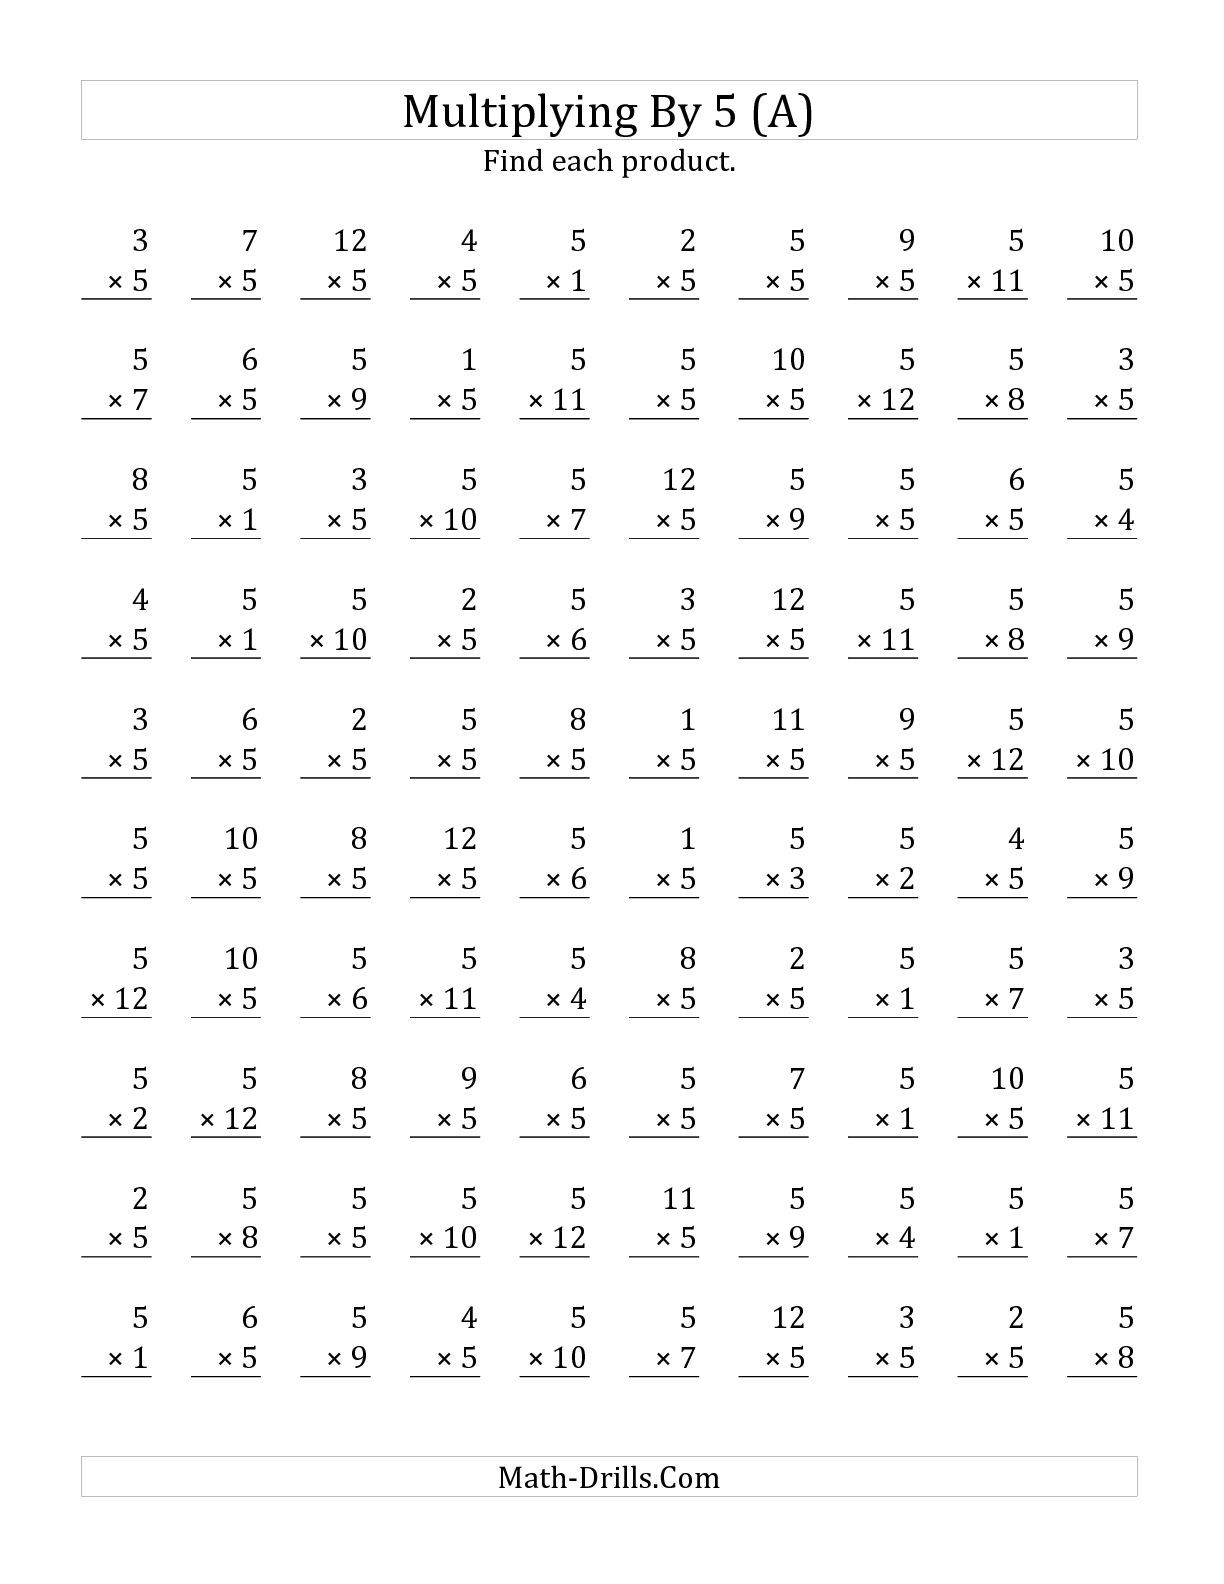 Worksheets Timed Multiplication Worksheets the multiplying 1 to 12 by 5 a math worksheet from multiplication page at drills com